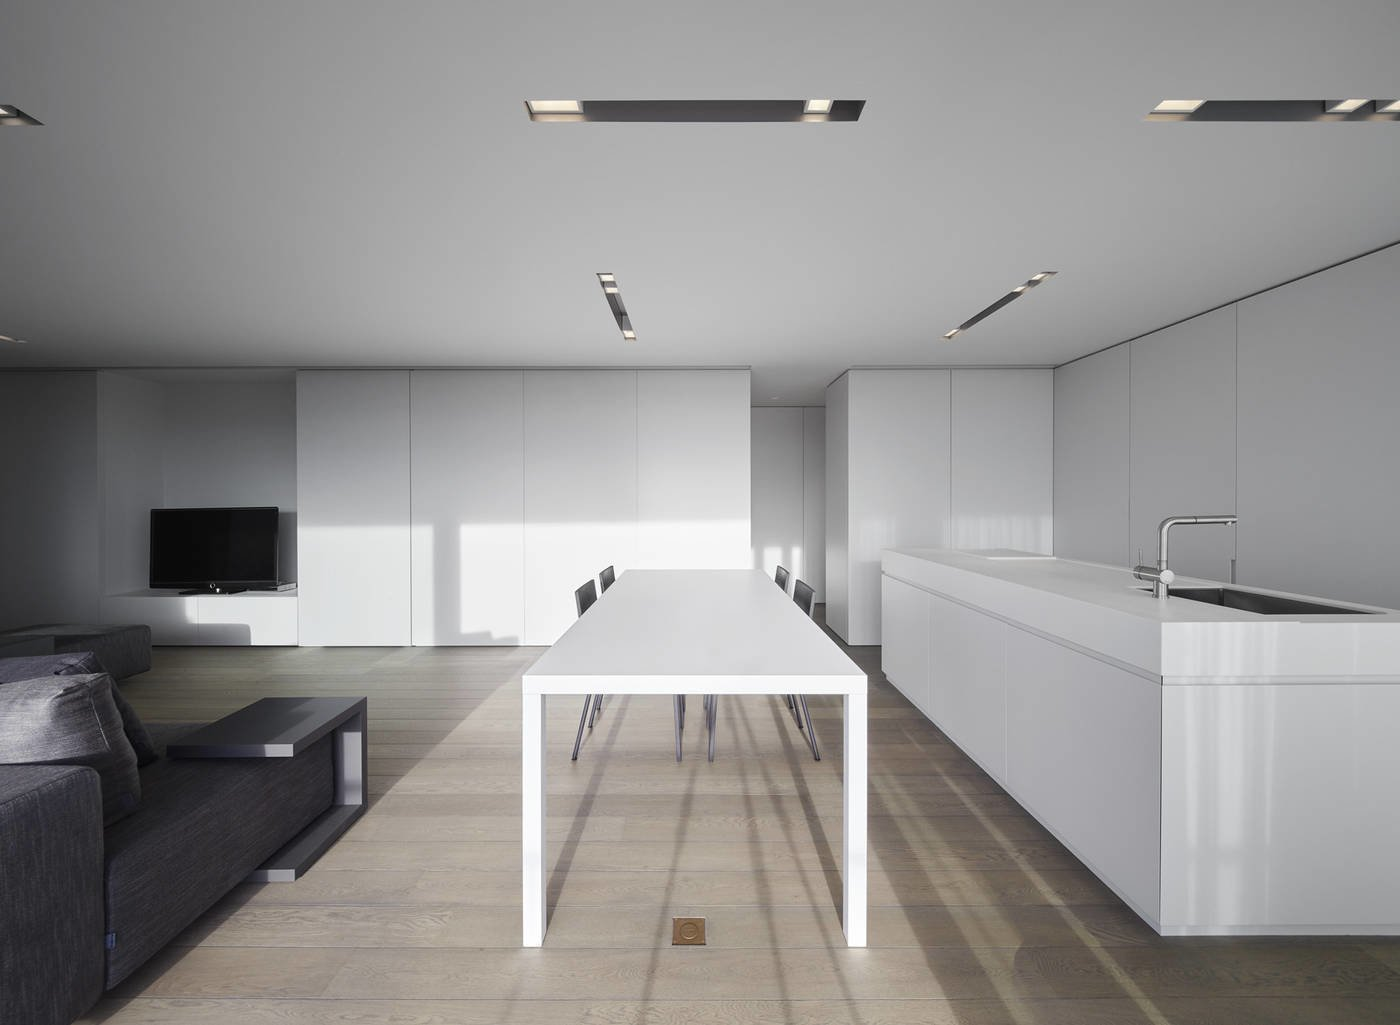 Tagged: Dining Room, Ceiling Lighting, Recessed Lighting, Table, Light Hardwood Floor, and Chair.  Photo 7 of 11 in 10 Minimalist and Monochromatic Homes in Belgium from Oostduinkerke by minus